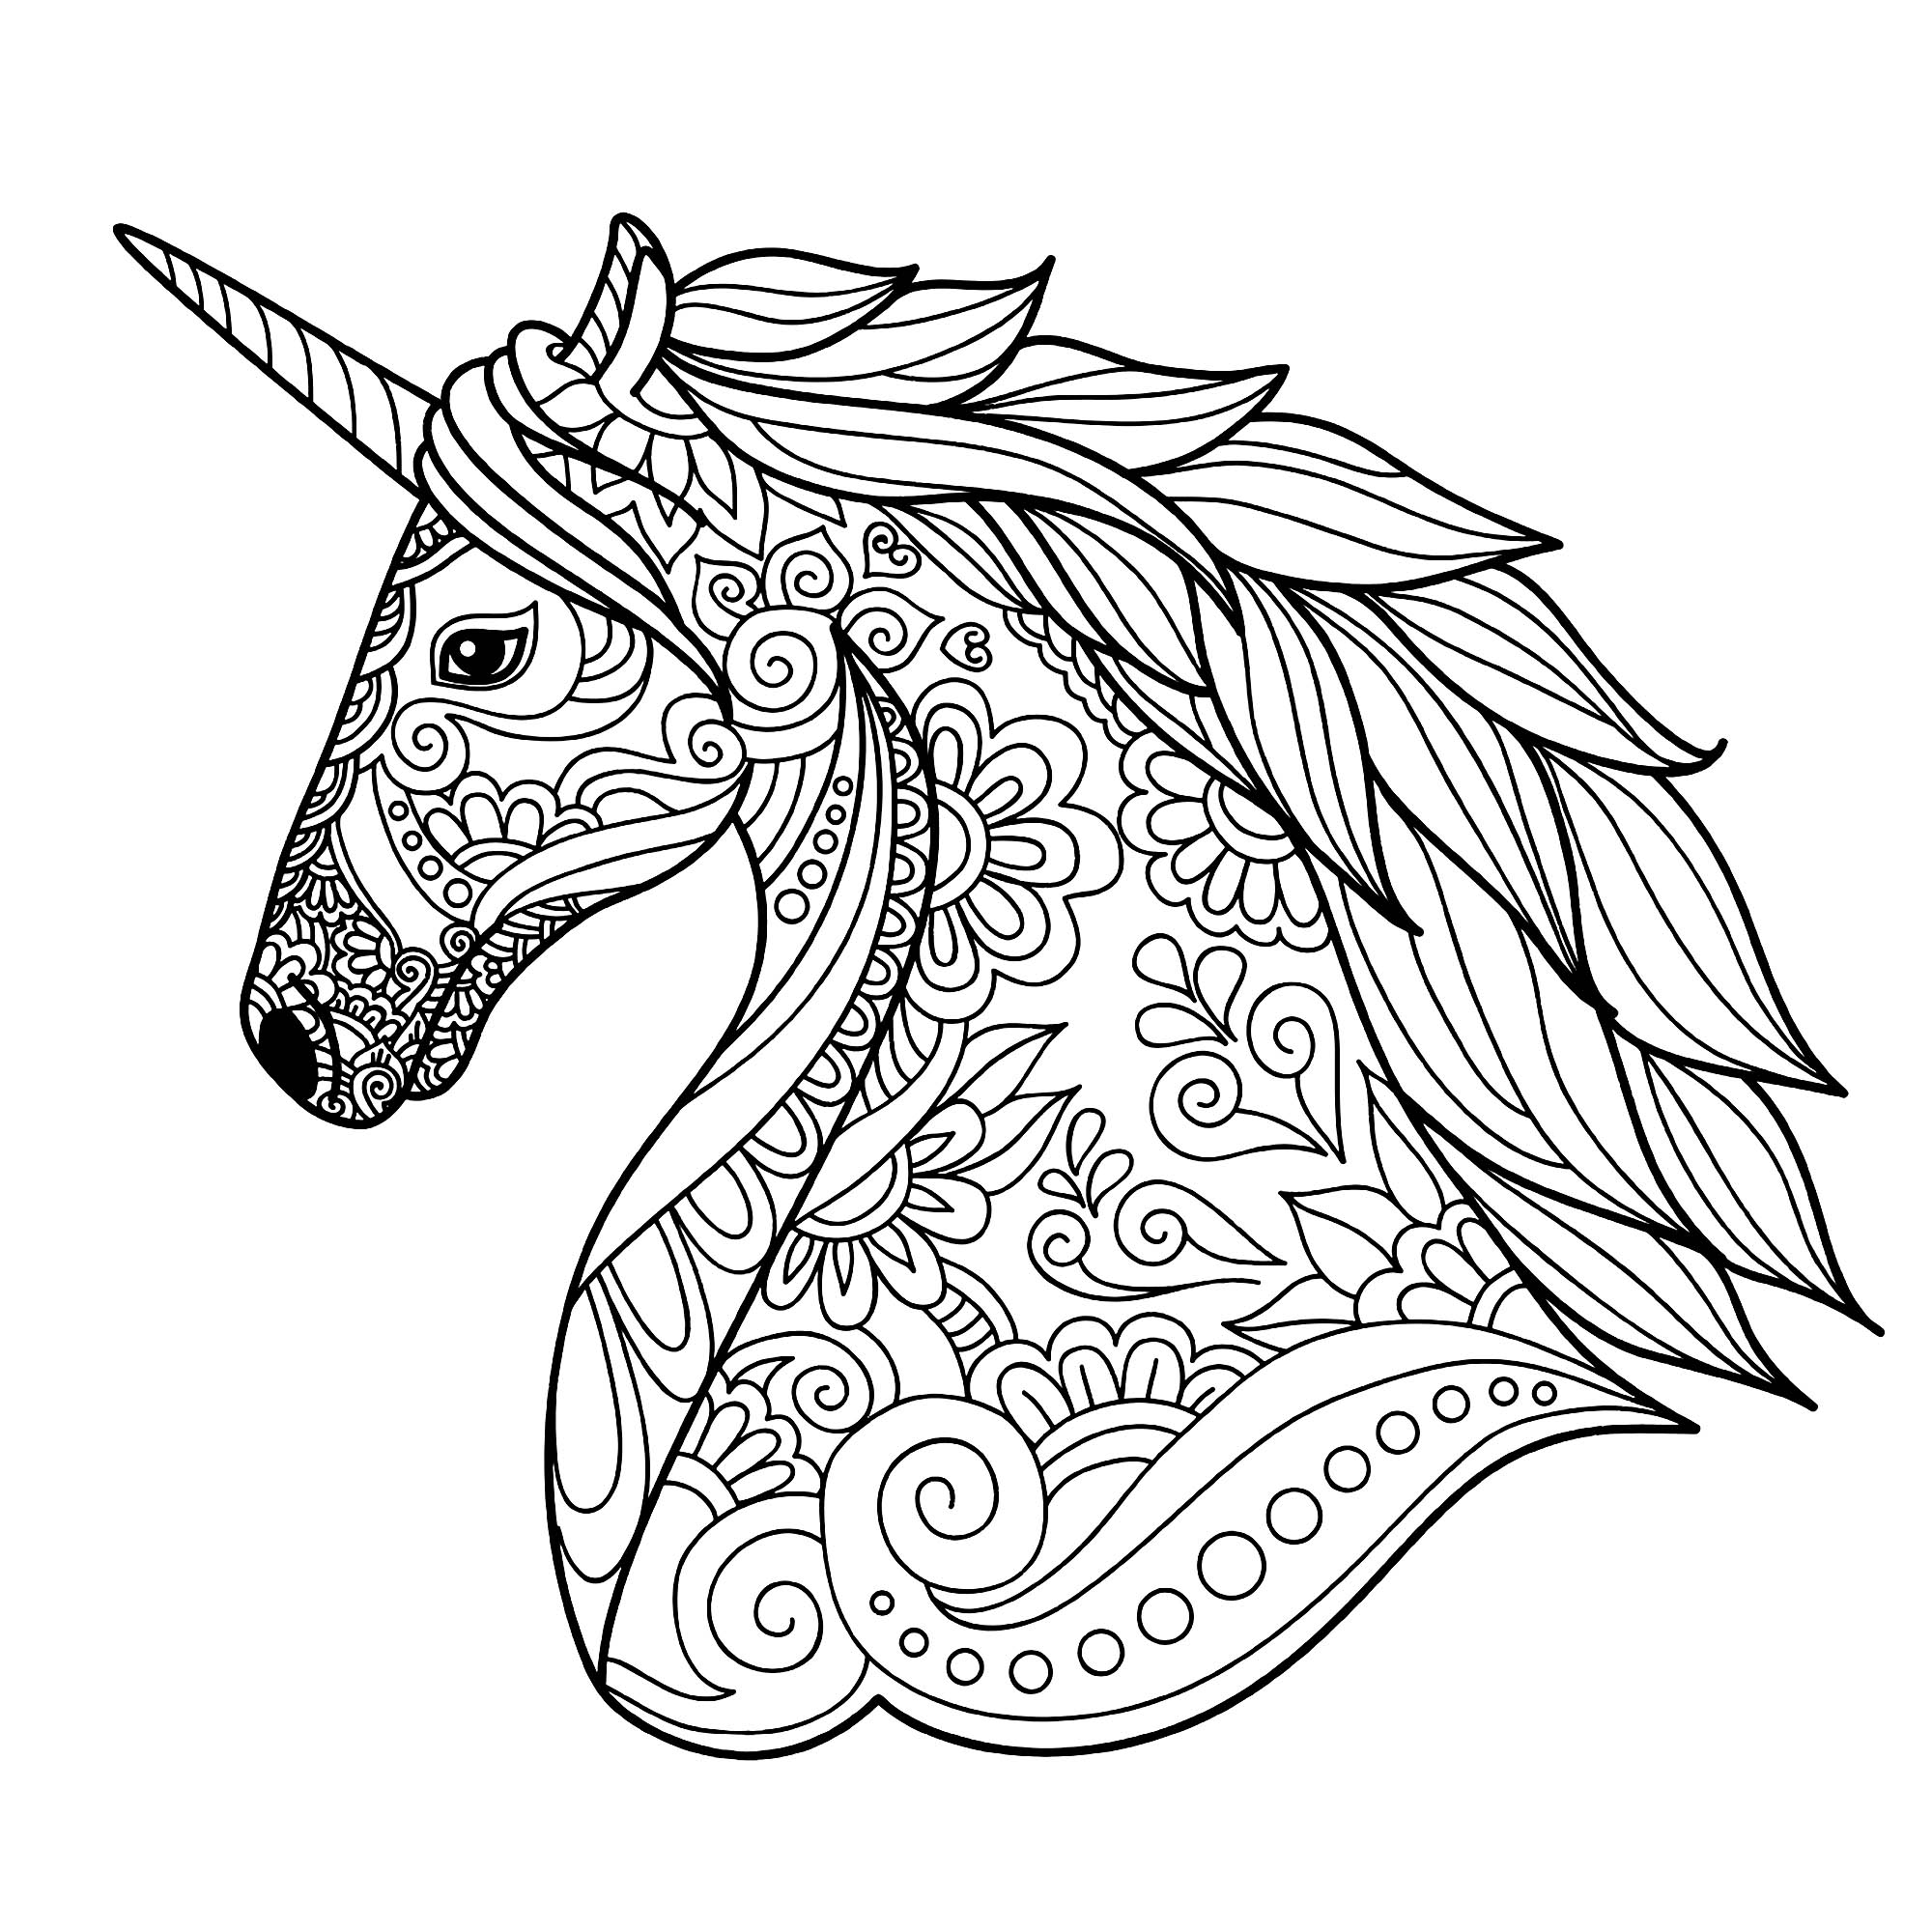 coloring page of unicorn free printable coloring pages for girls coloring page unicorn of